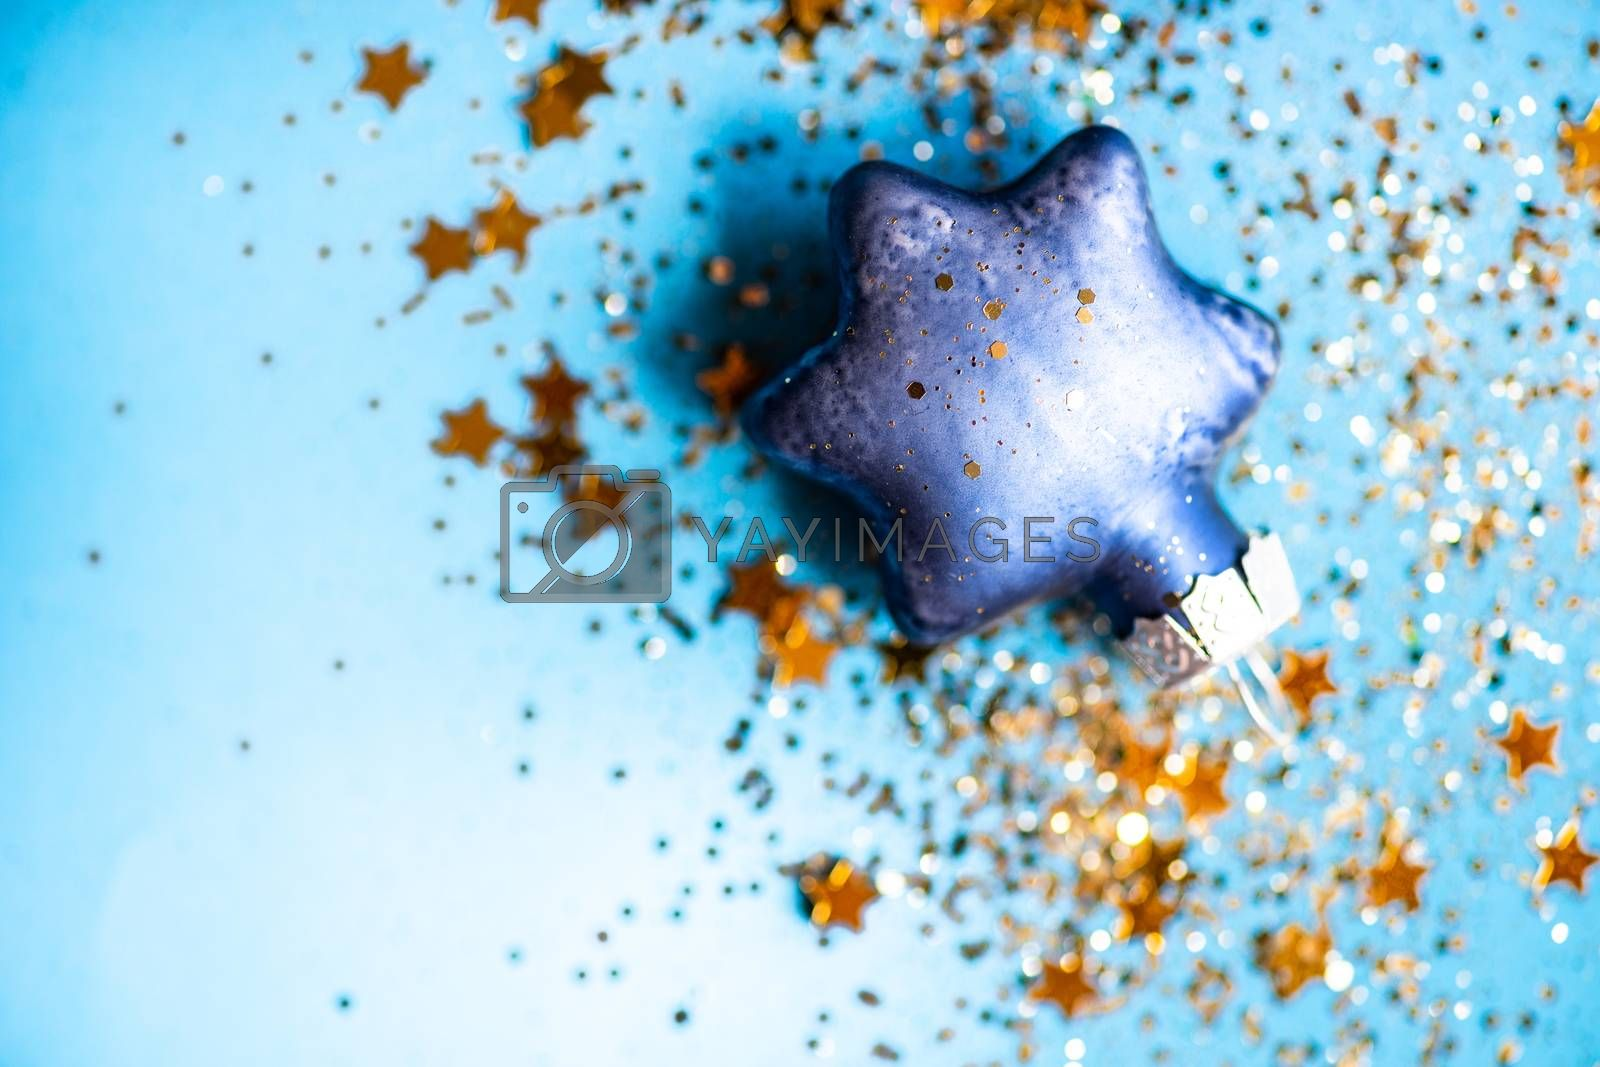 Festive Christmas card concept with star shaped decor on blue background with copy space